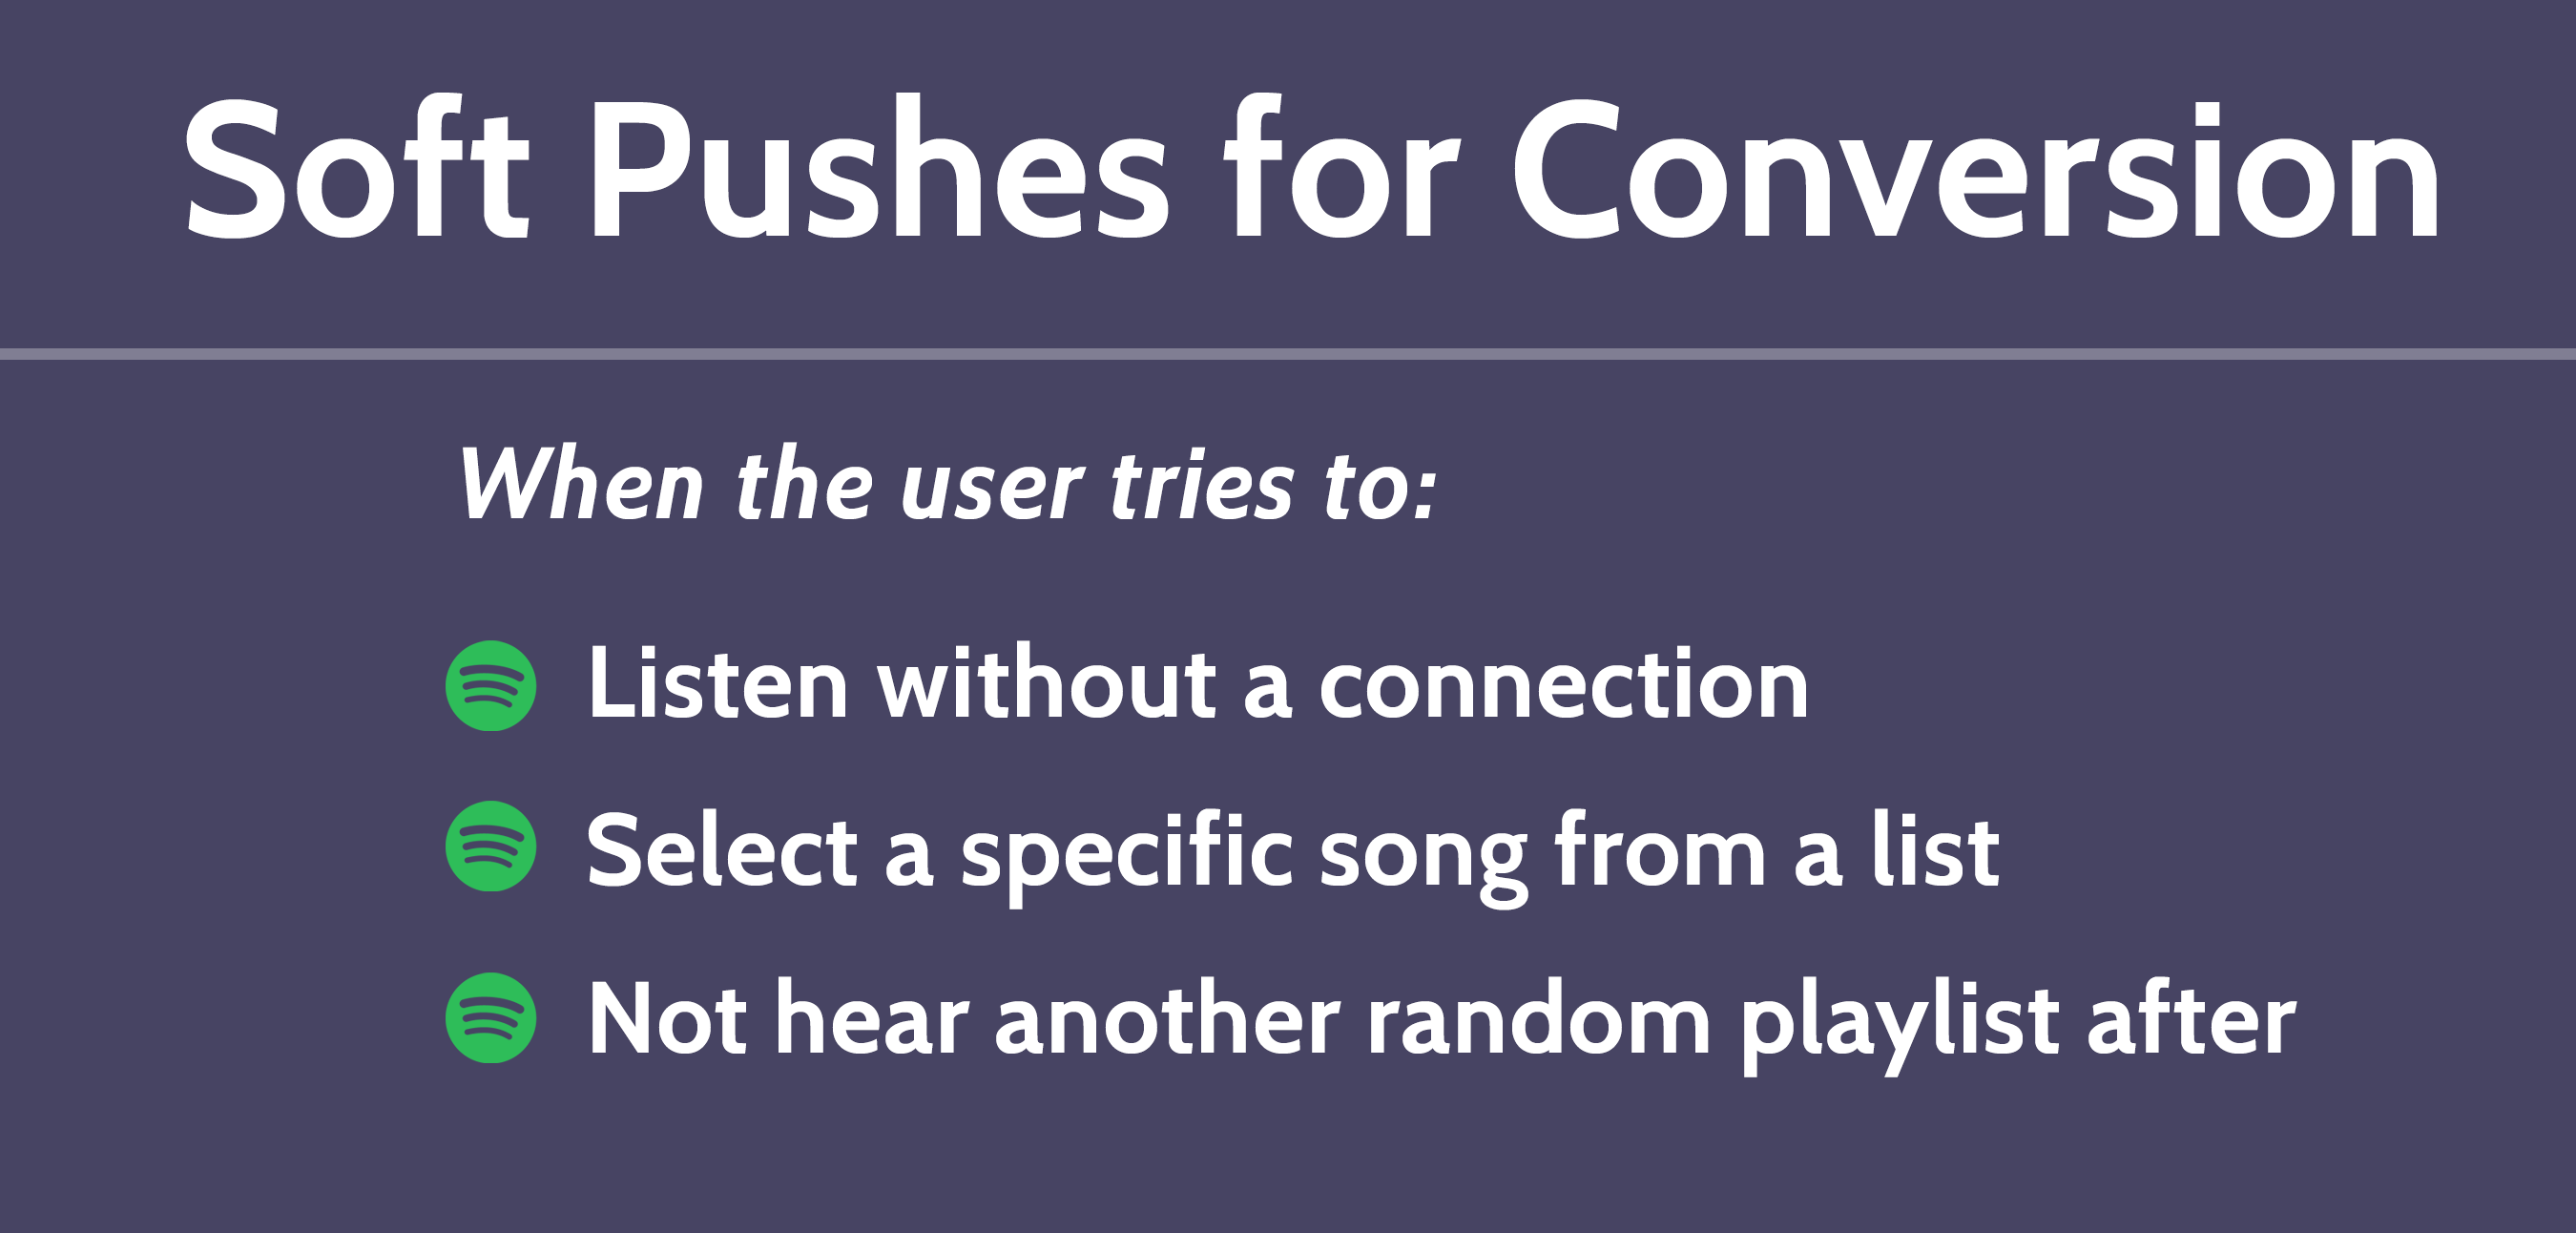 Spotify Soft Conversion Pushes